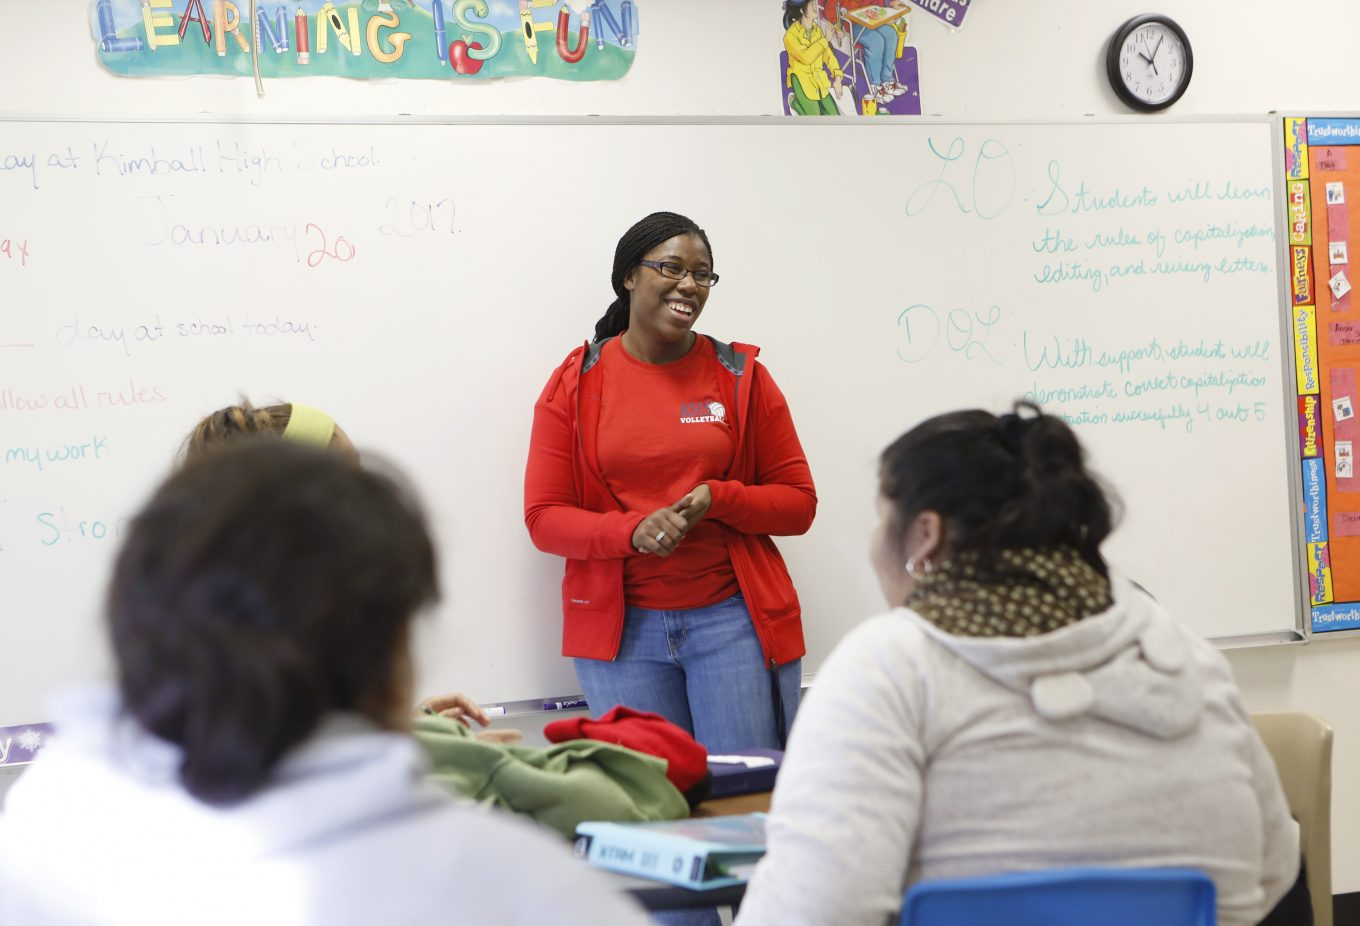 Monica Gray Rhinehart, a 2005 graduate of Kimball High, is now a teacher and coach at the Dallas school. Photo/Lara Solt